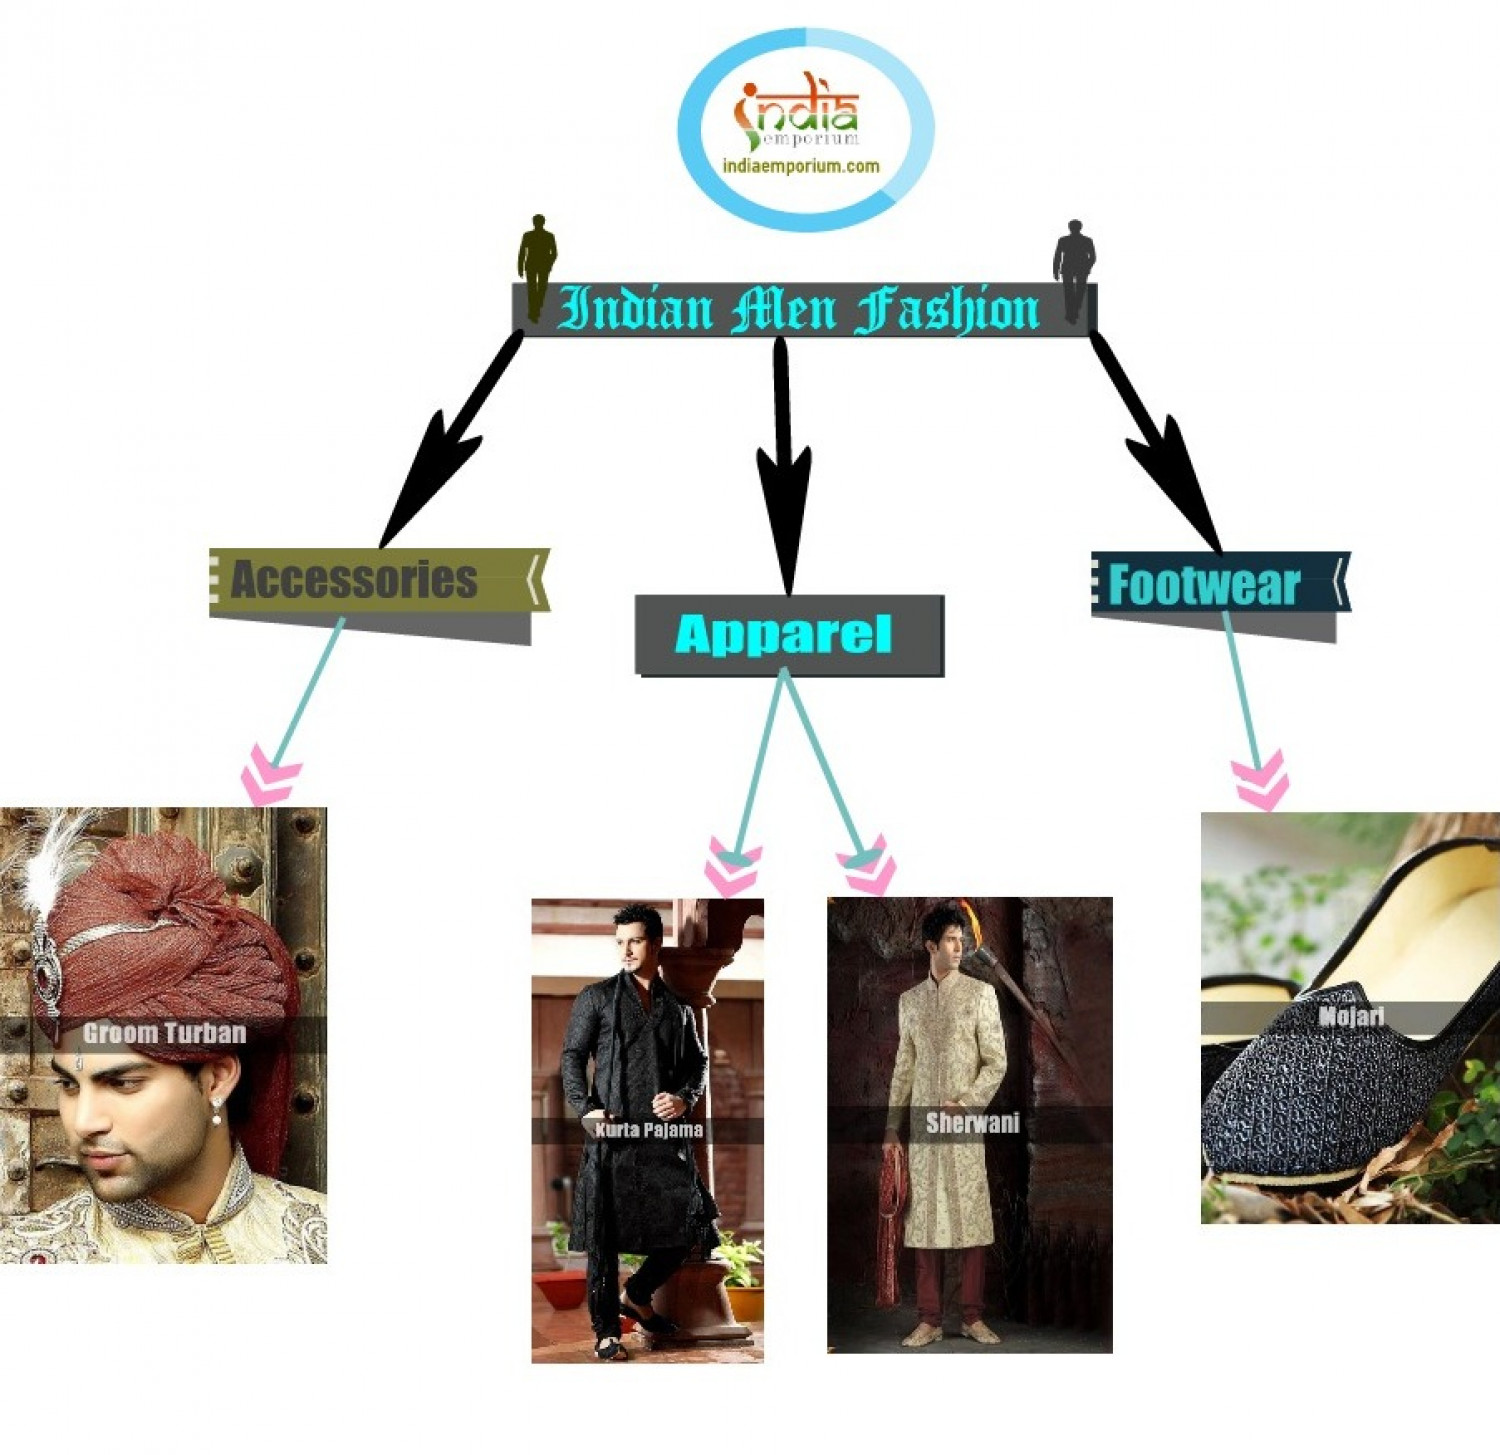 Indian Men Fashion Infographic